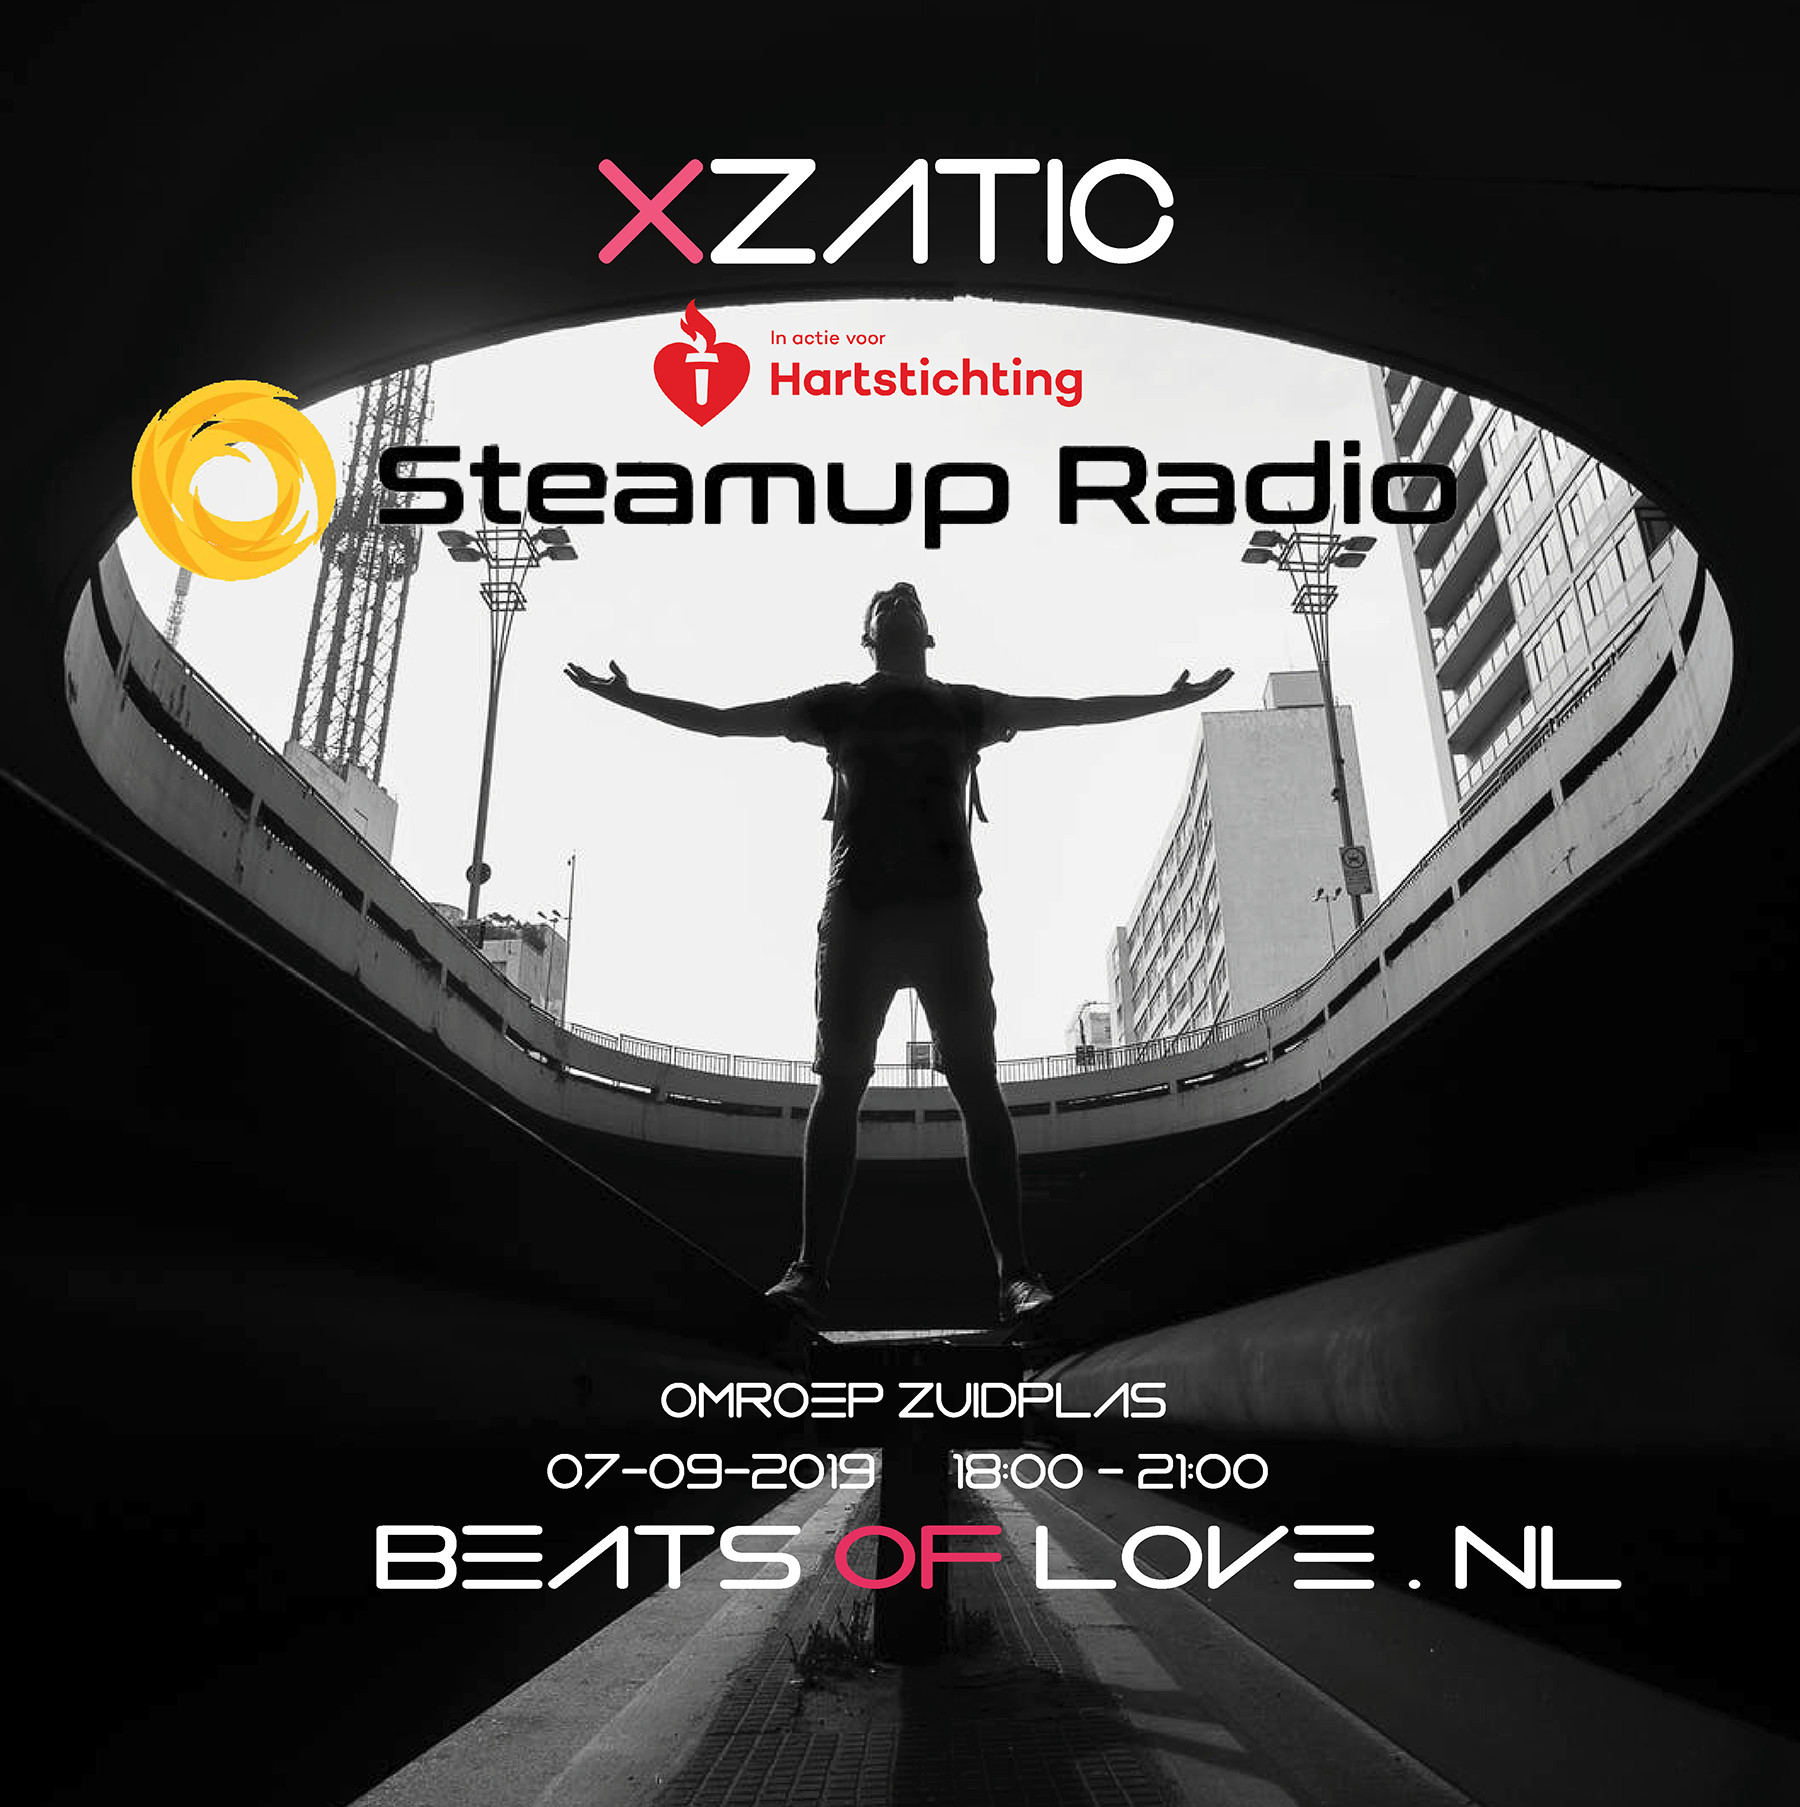 Xzatic Presents Beats Of Love [003] Live at Radio Zuidplas, Nieuwerkerk Aan Den IJssel